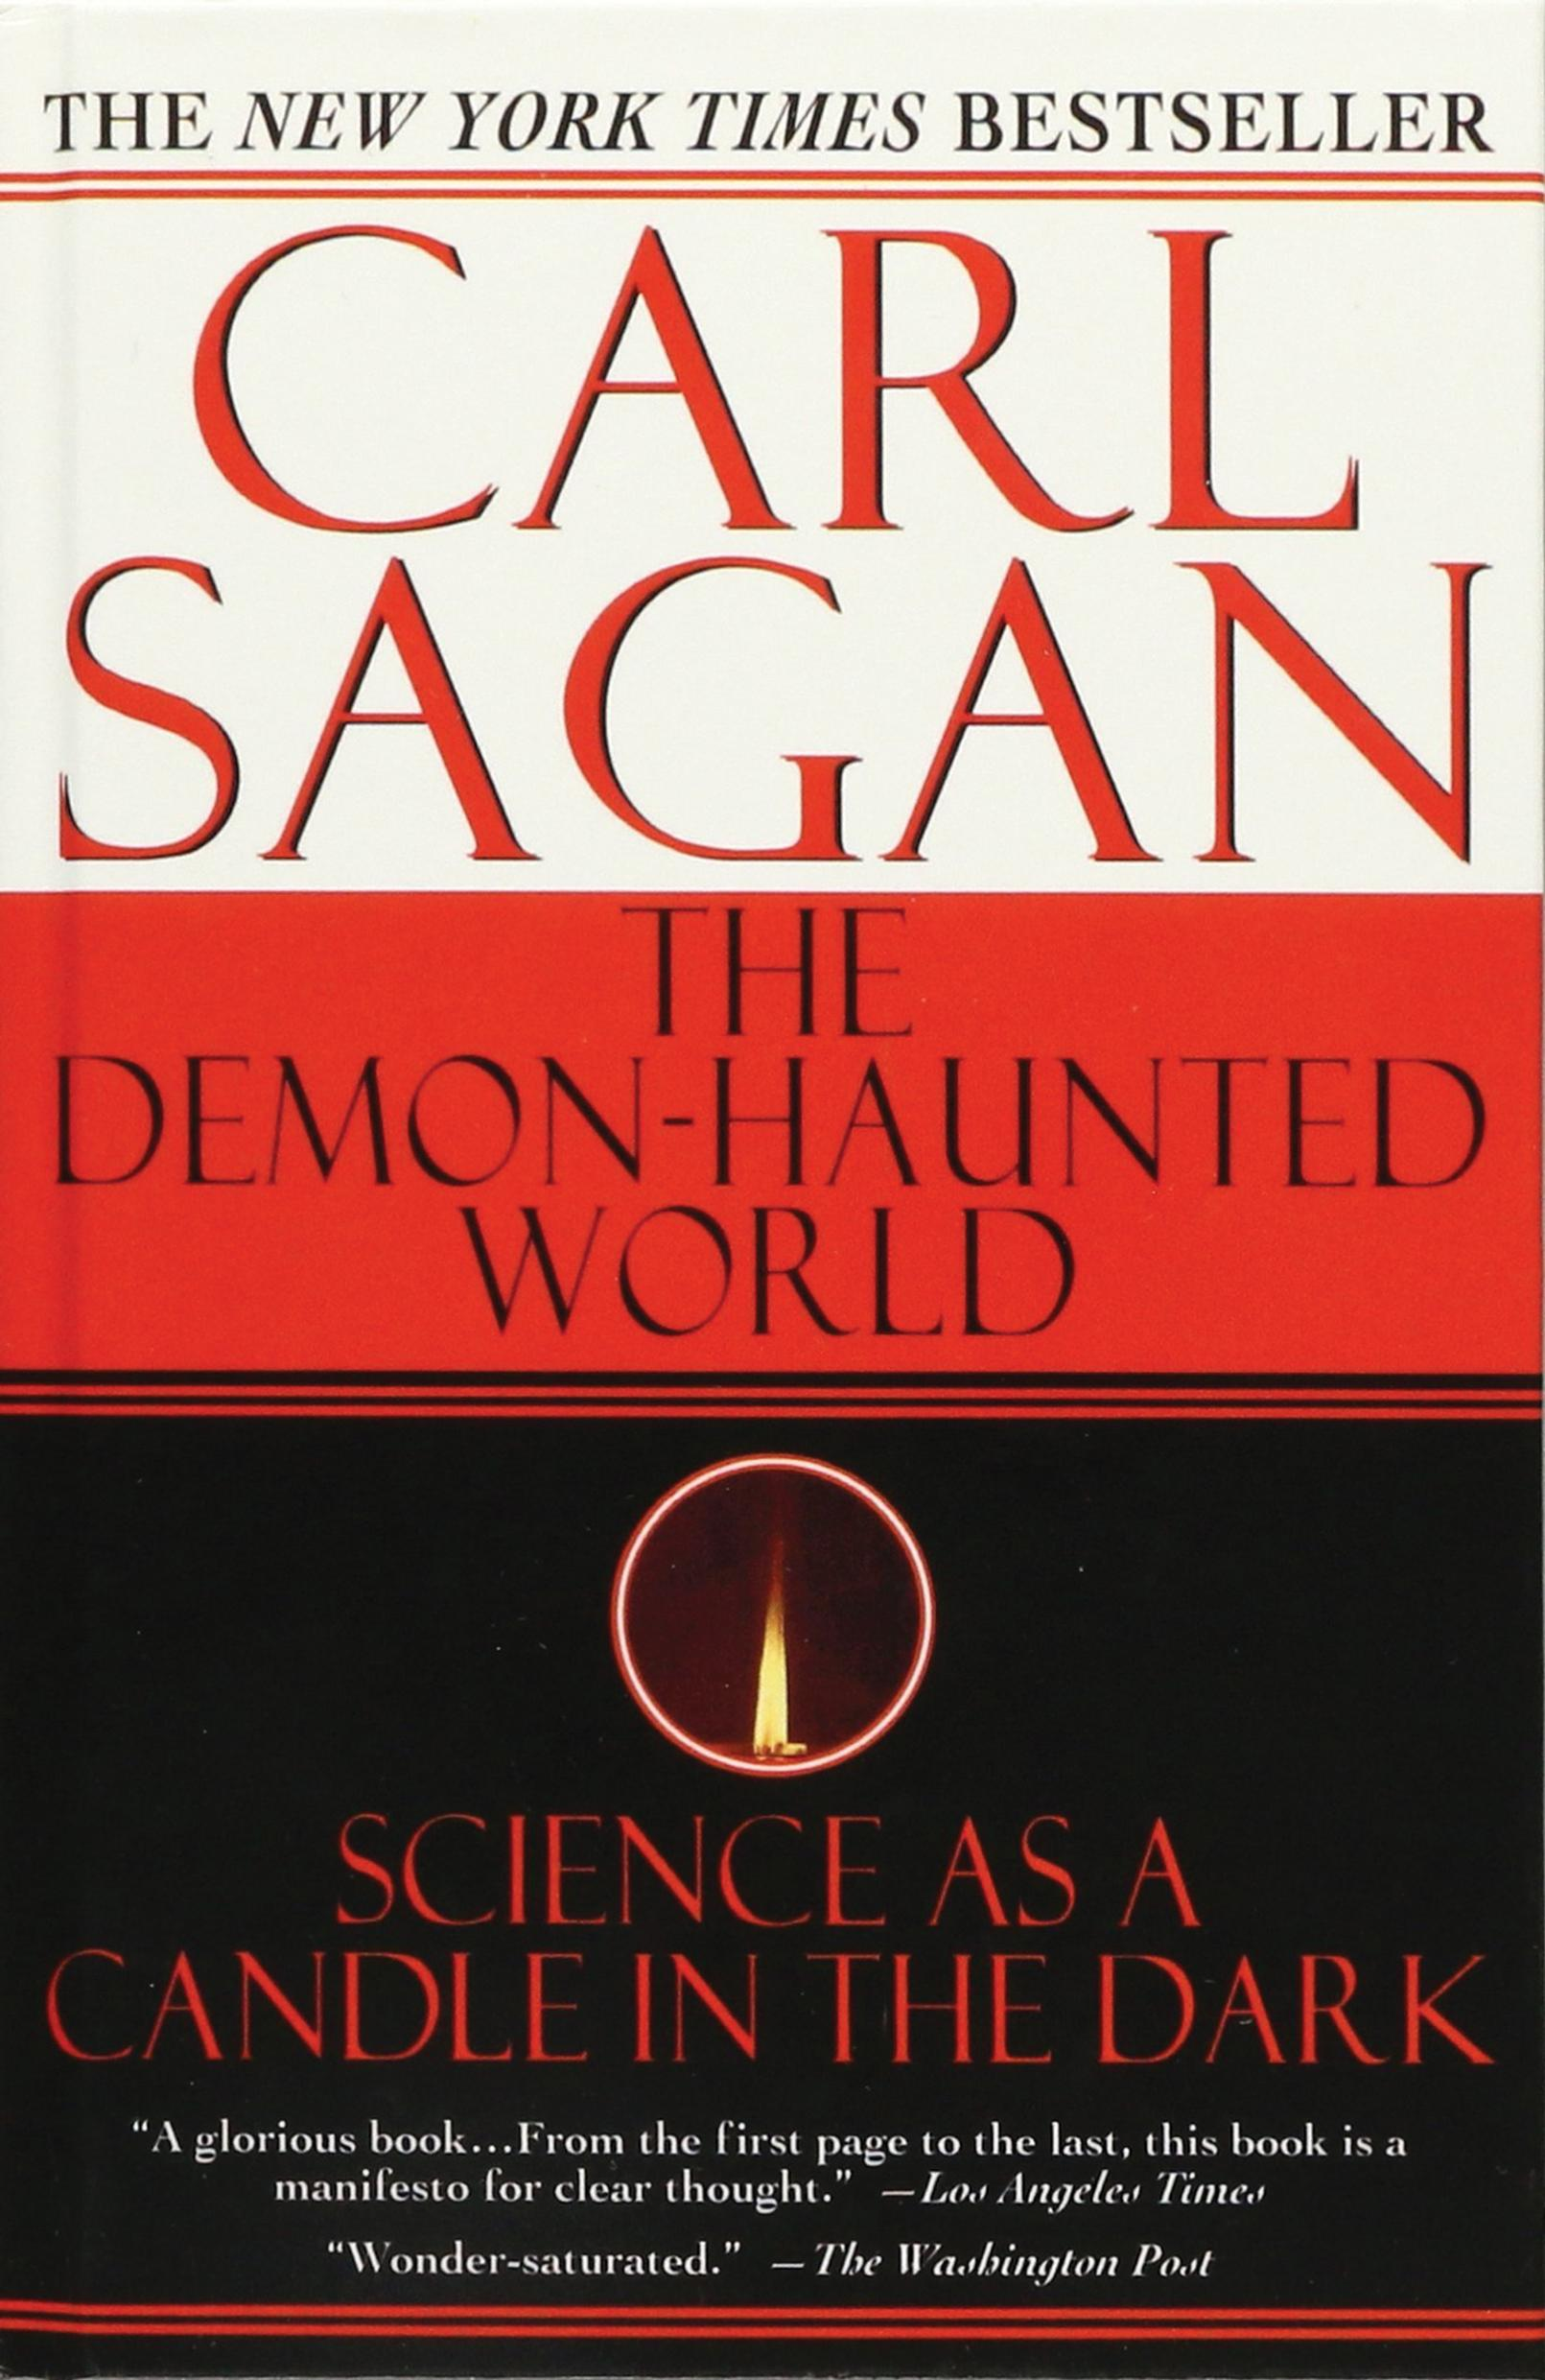 Lie-proof your life with Sagan's 'baloney detection' checklist